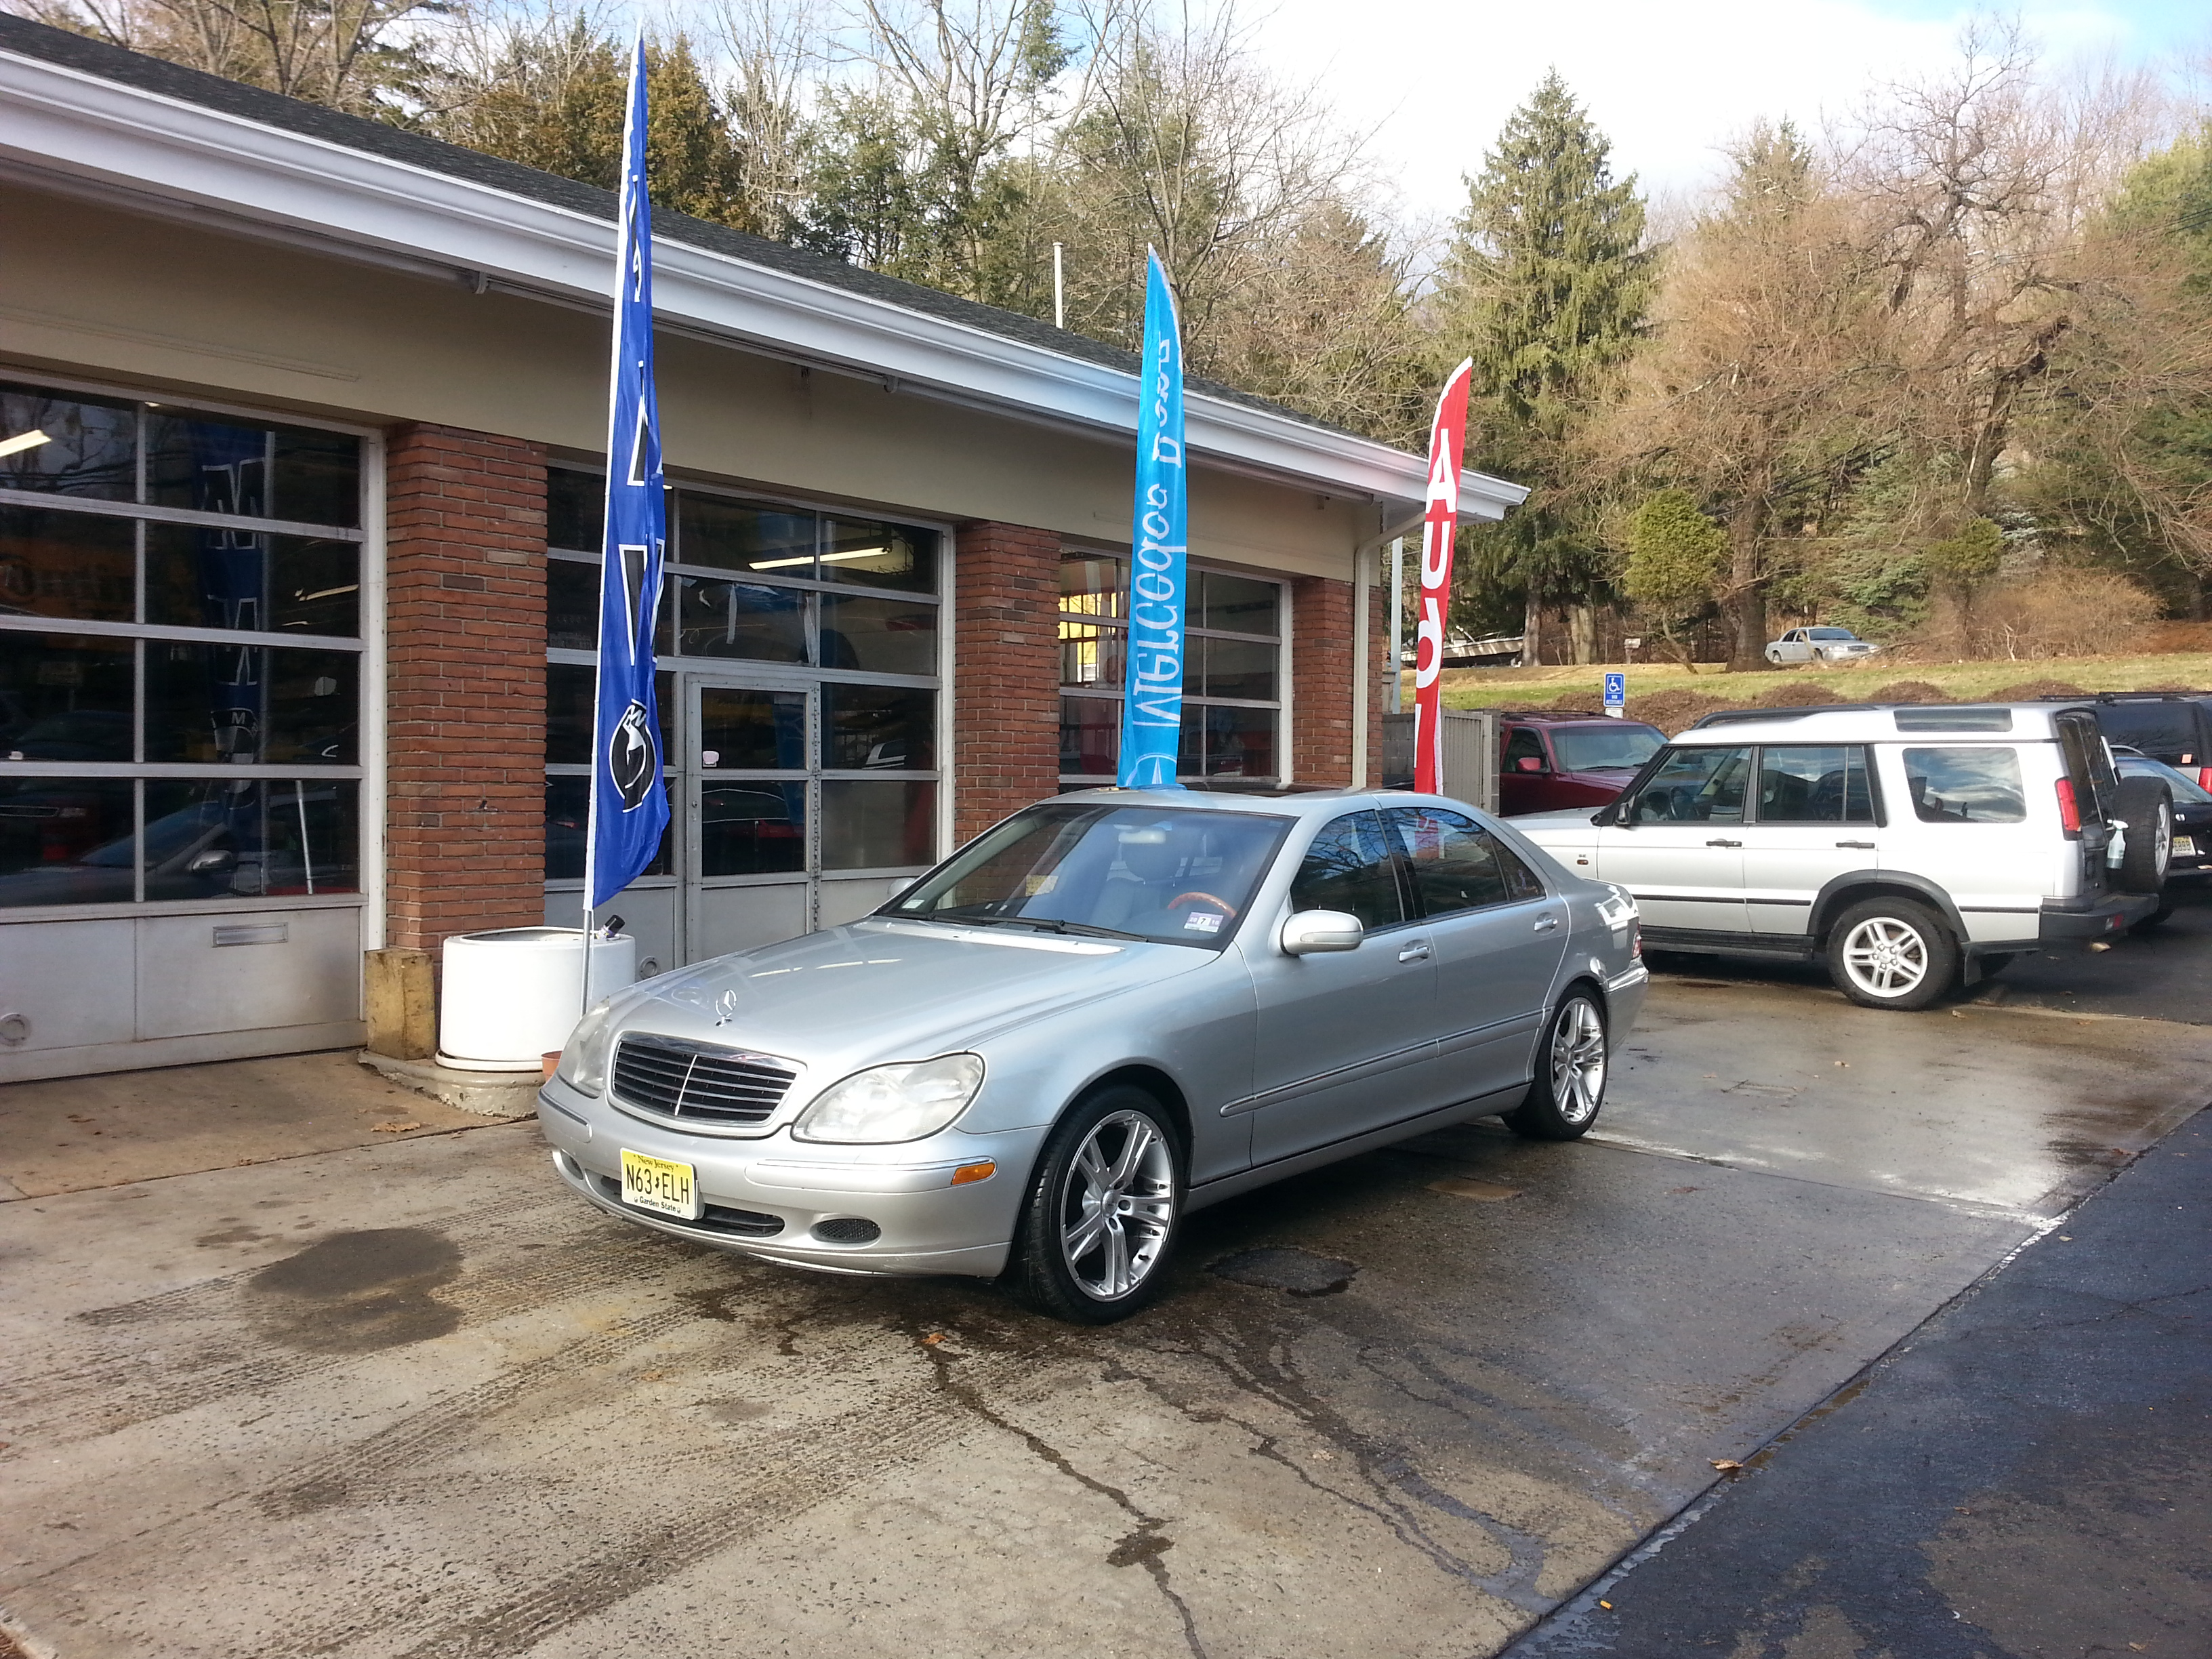 2001 Mercedes Benz S430 For Sale 2001 Mercedes Benz S430 Front View ...